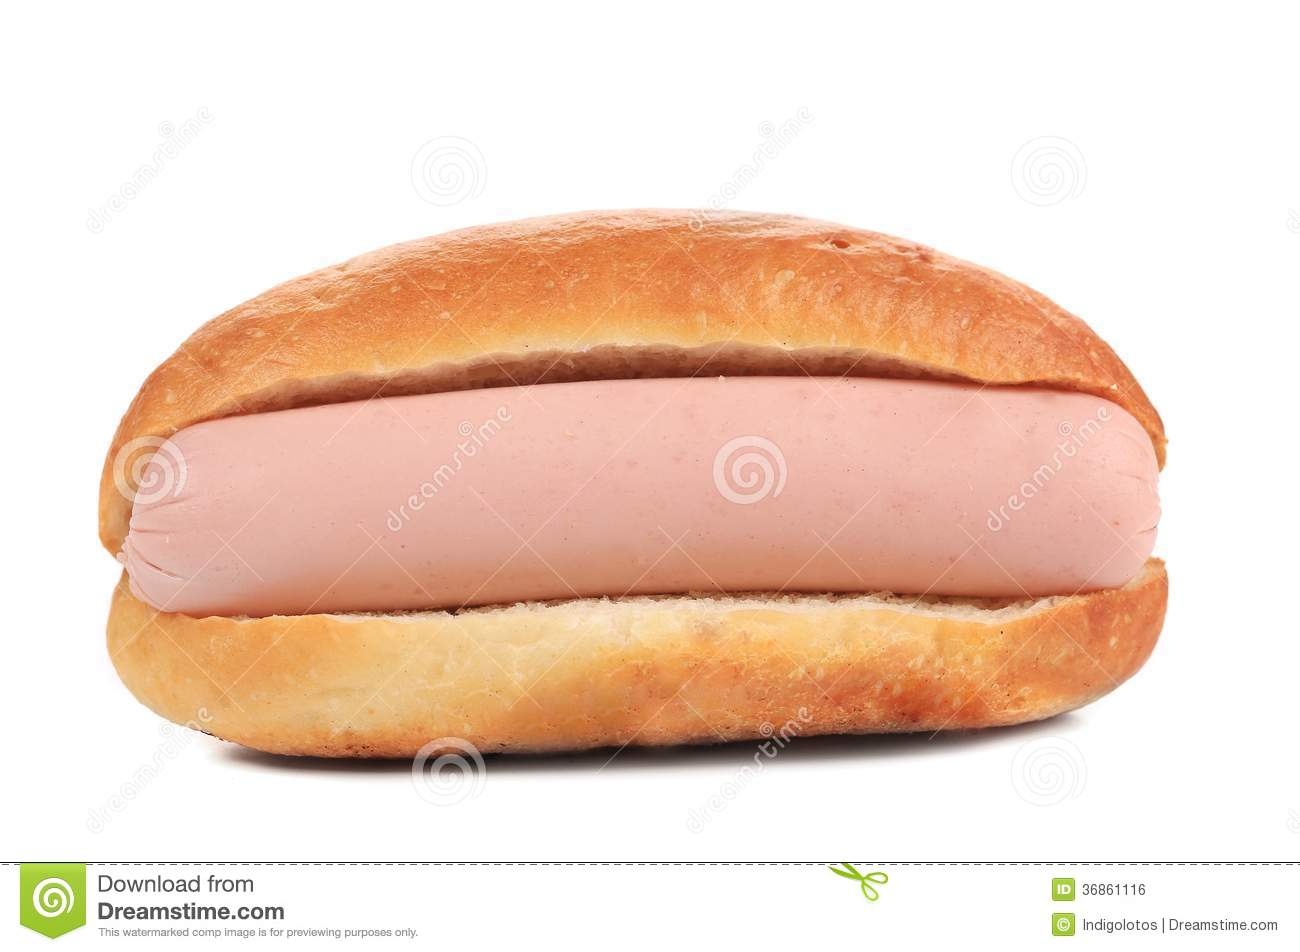 how to say hot dog